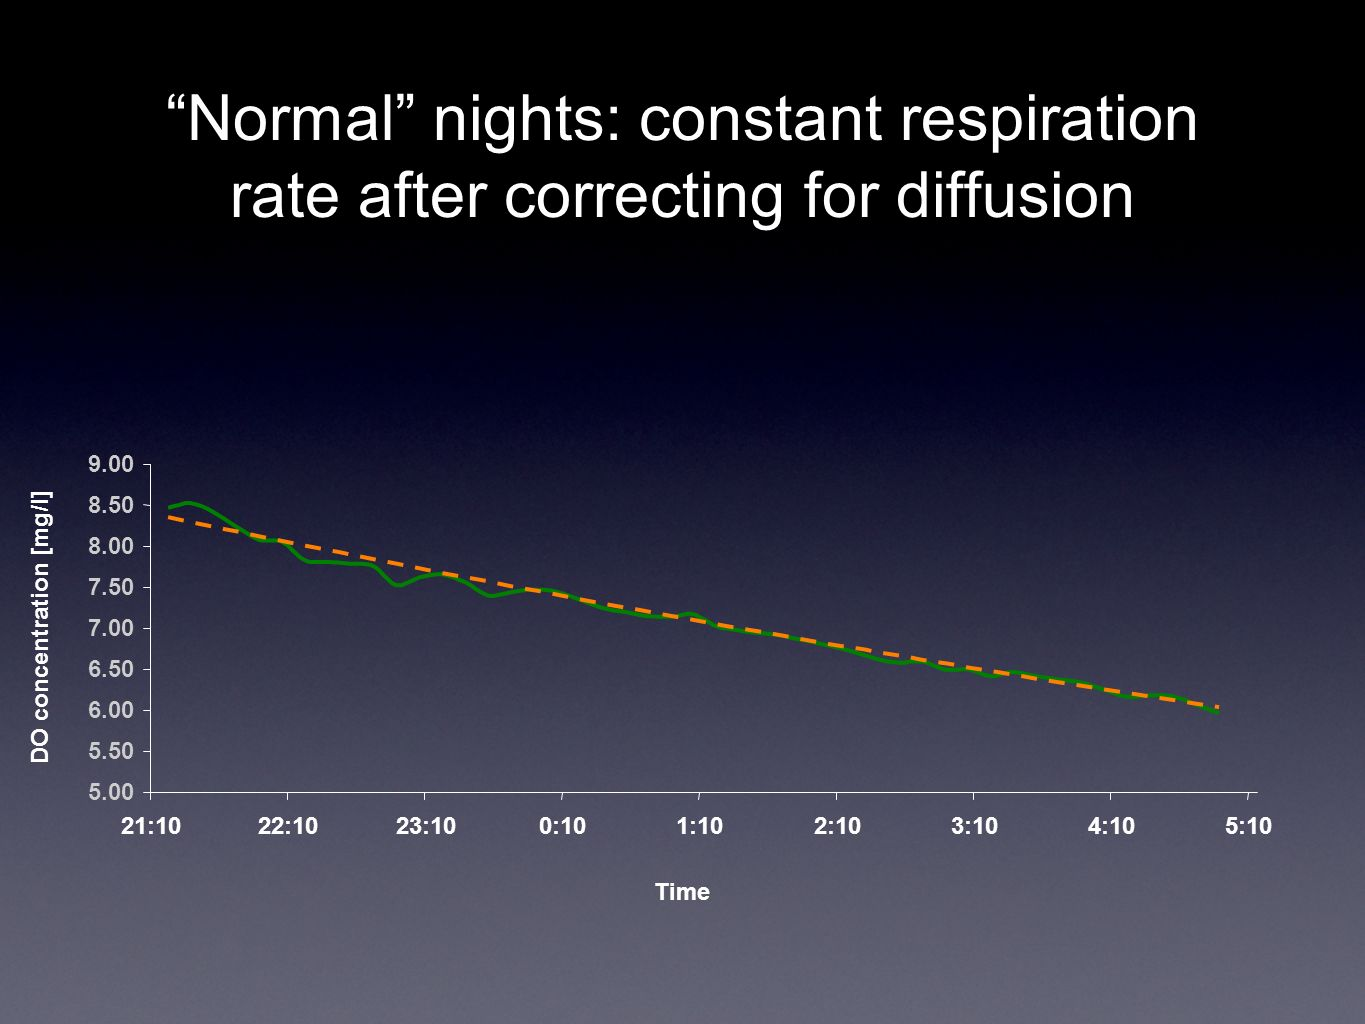 Normal nights: constant respiration rate after correcting for diffusion 5.00 5.50 6.00 6.50 7.00 7.50 8.00 8.50 9.00 21:1022:1023:100:101:102:103:104: